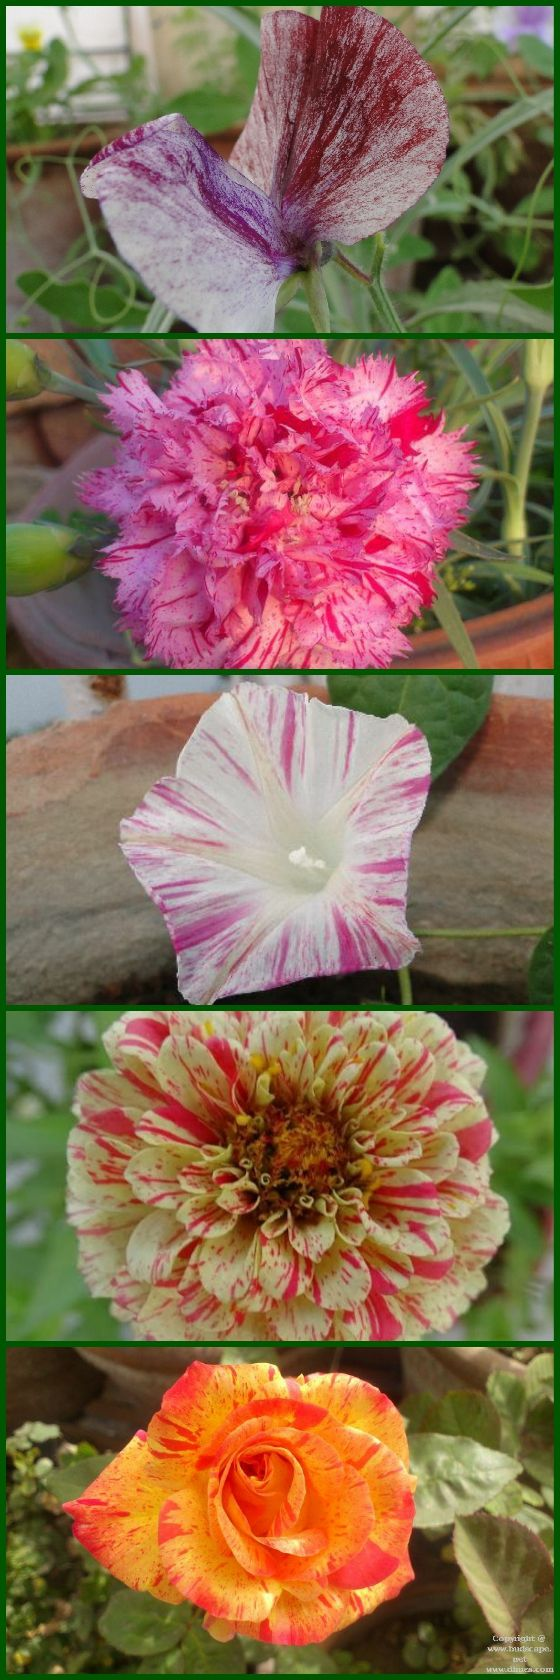 A COLLECTION OF STRIPED FLOWER PICTURES #stripedflowers #gardening #beautifulflowers #stripedroses